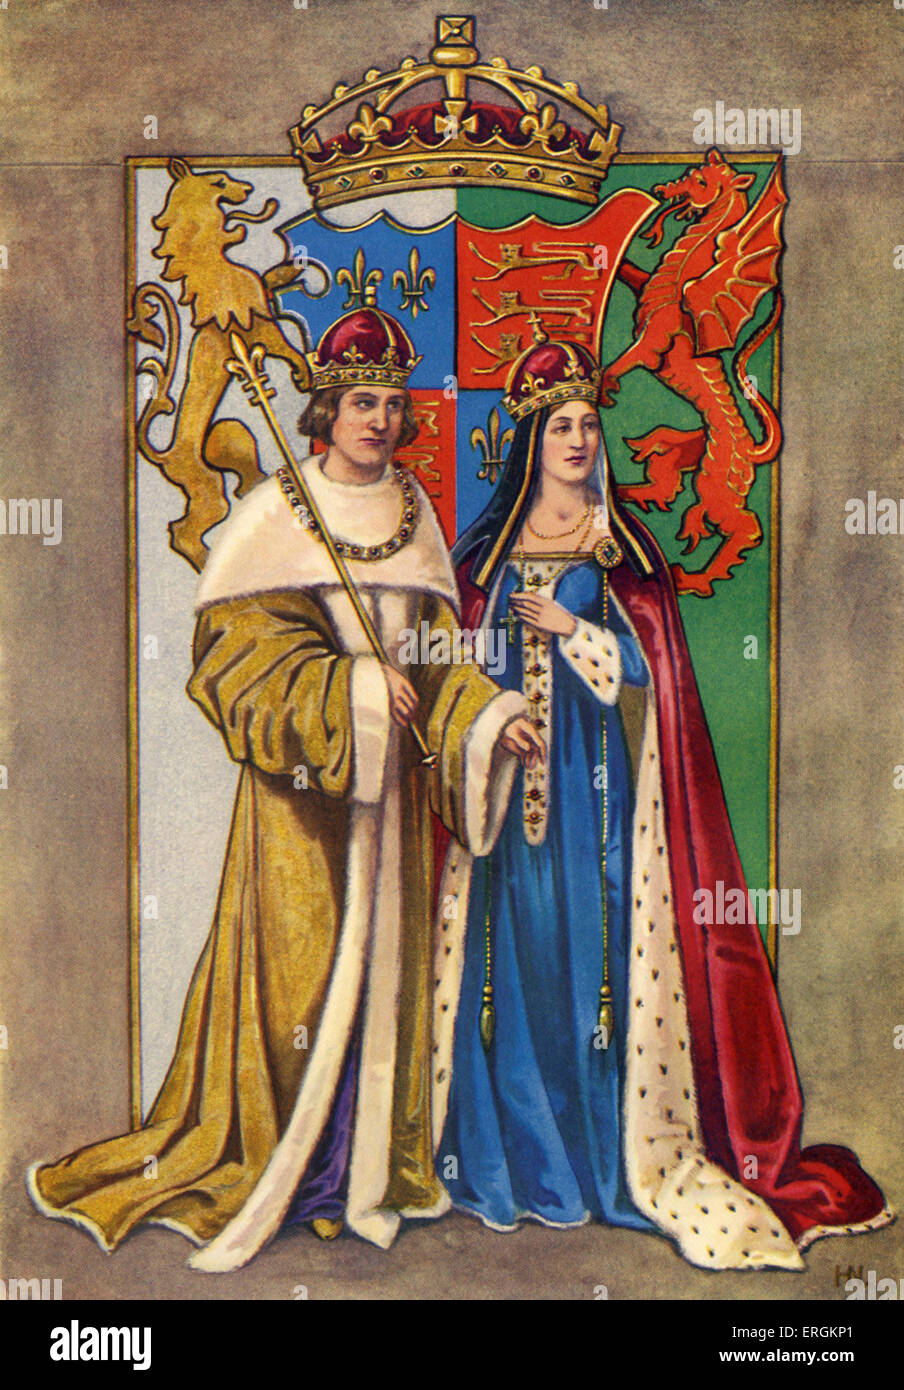 King Henry VII of England (1457-1509) pictured with wife Queen Elysabeth / Queen Elizabeth / Elizabeth of York (1466 Stock Photo